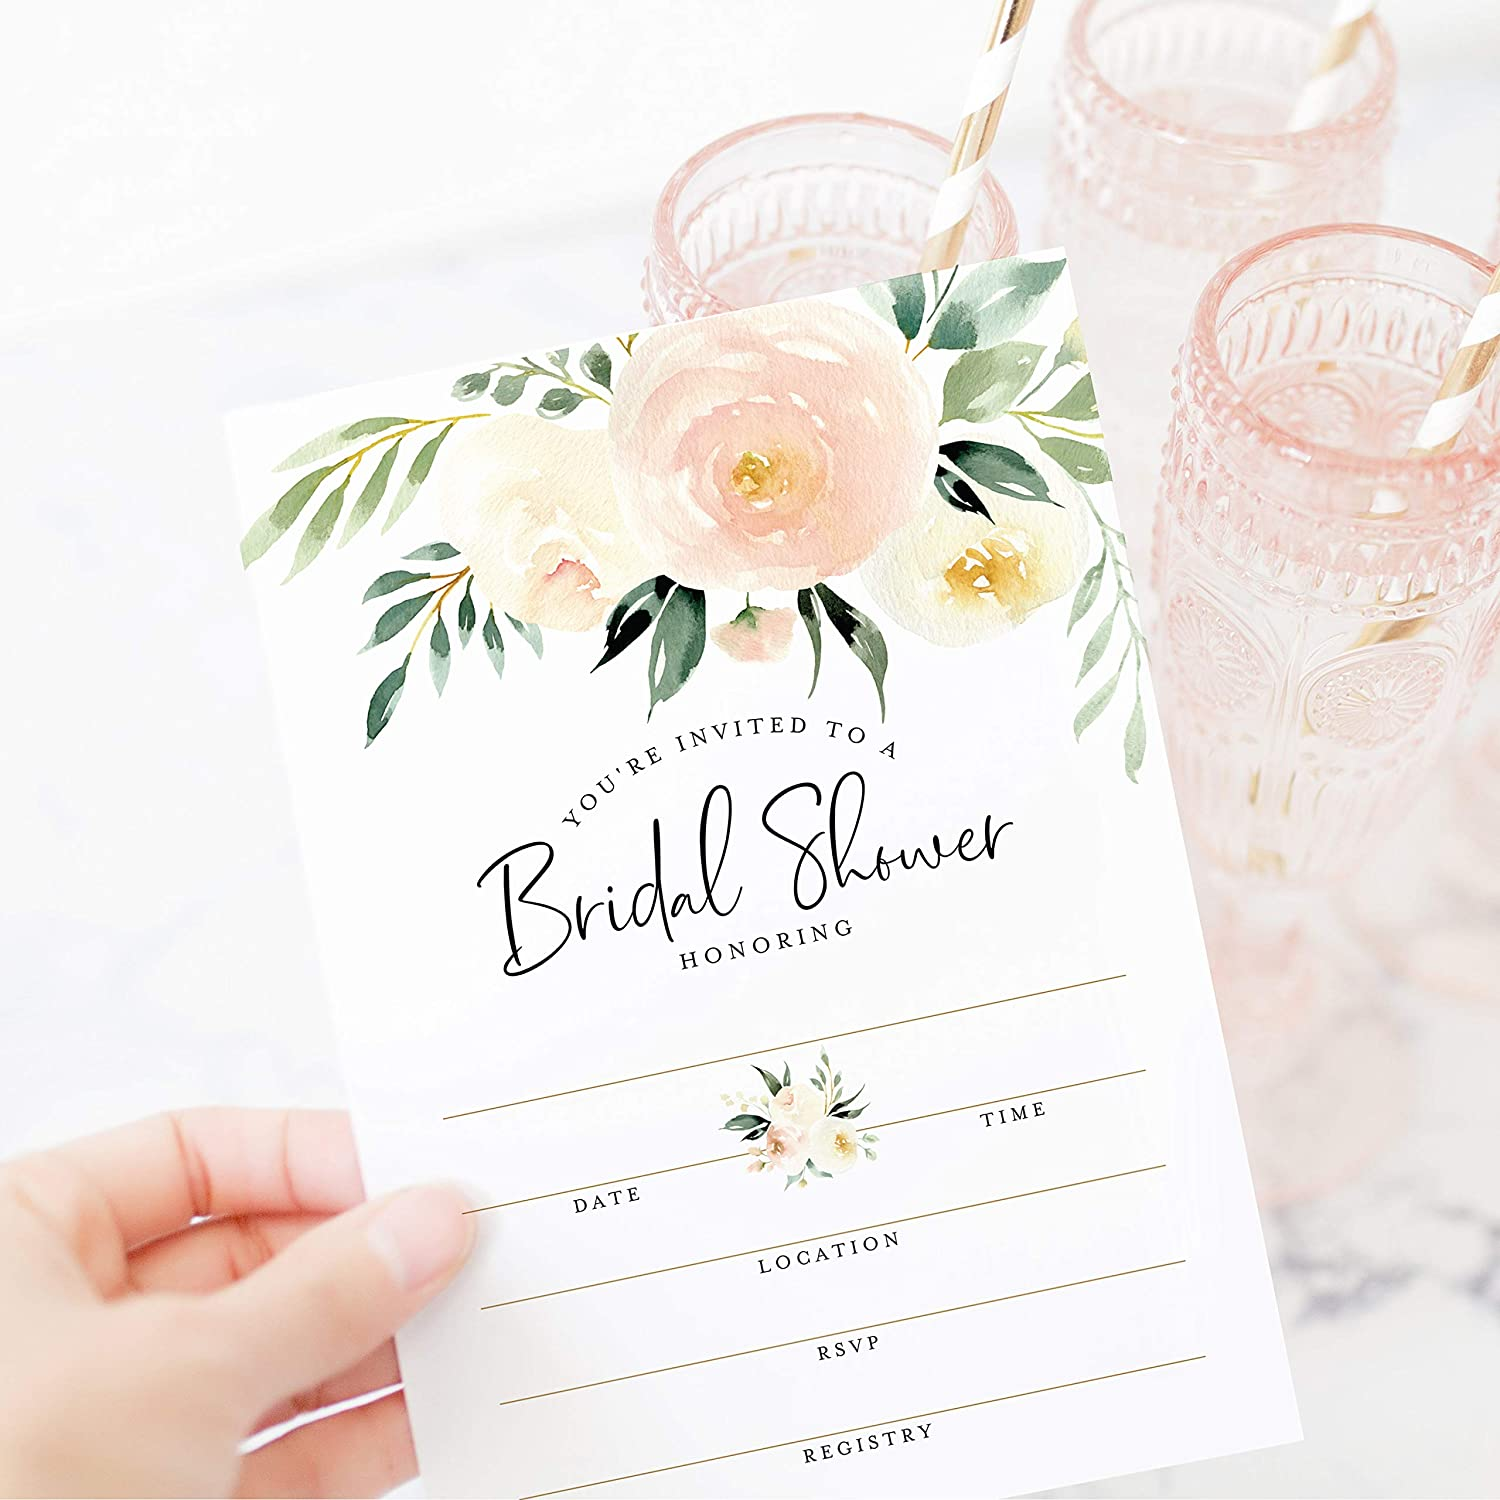 Bliss Collections Bridal Shower Invitations with Envelopes, 25 Cards + 25 Envelopes, 5x7 Blank Fill-In Invites in Coral Greenery Watercolor Floral Design Matches Your Party Decorations